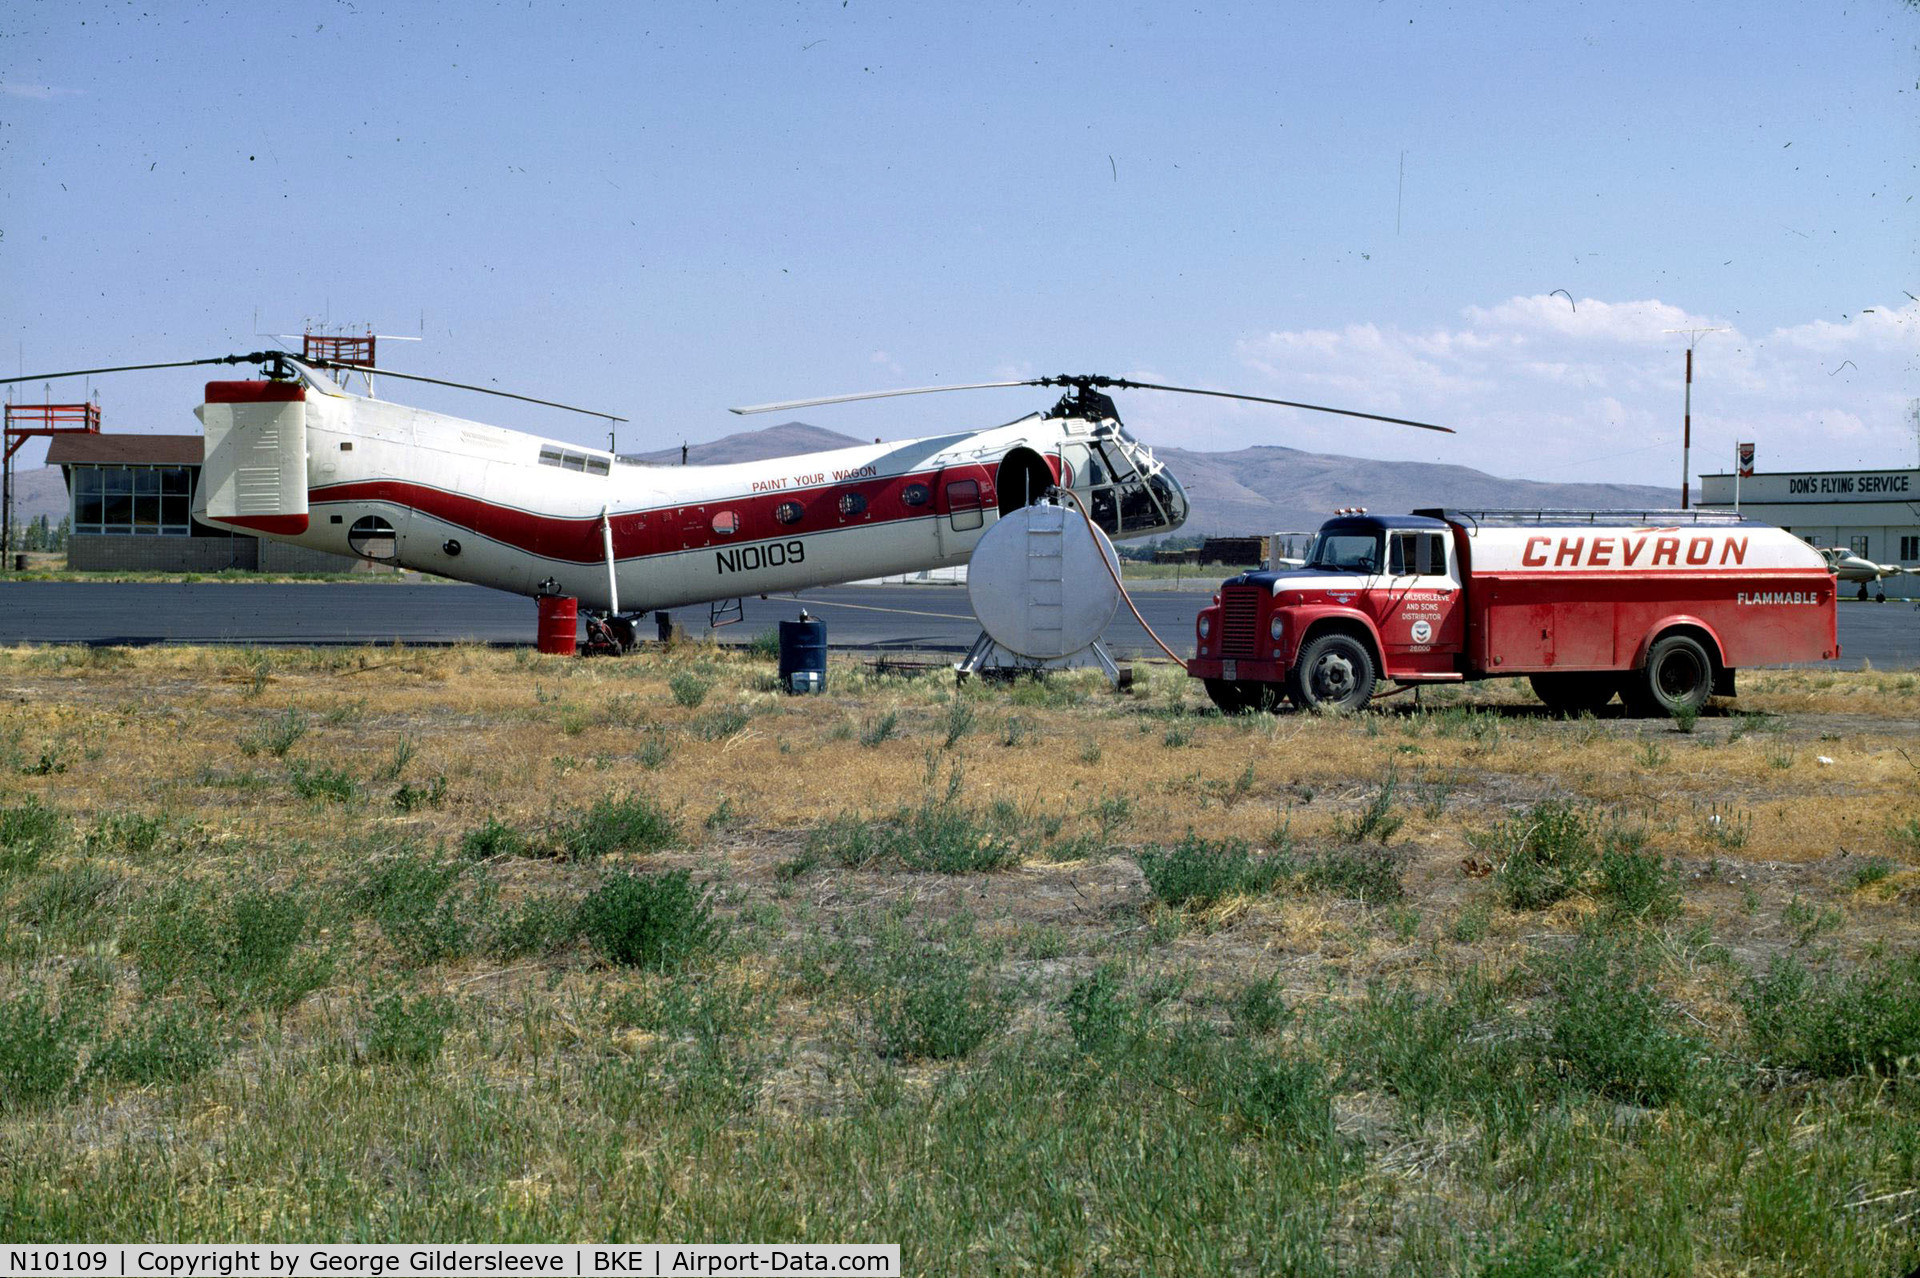 N10109, 1953 Vertol (Piasecki) 42A (H-21B) C/N B.77, Baker Airport with flagstaff hill behind. Baker City, Oregon